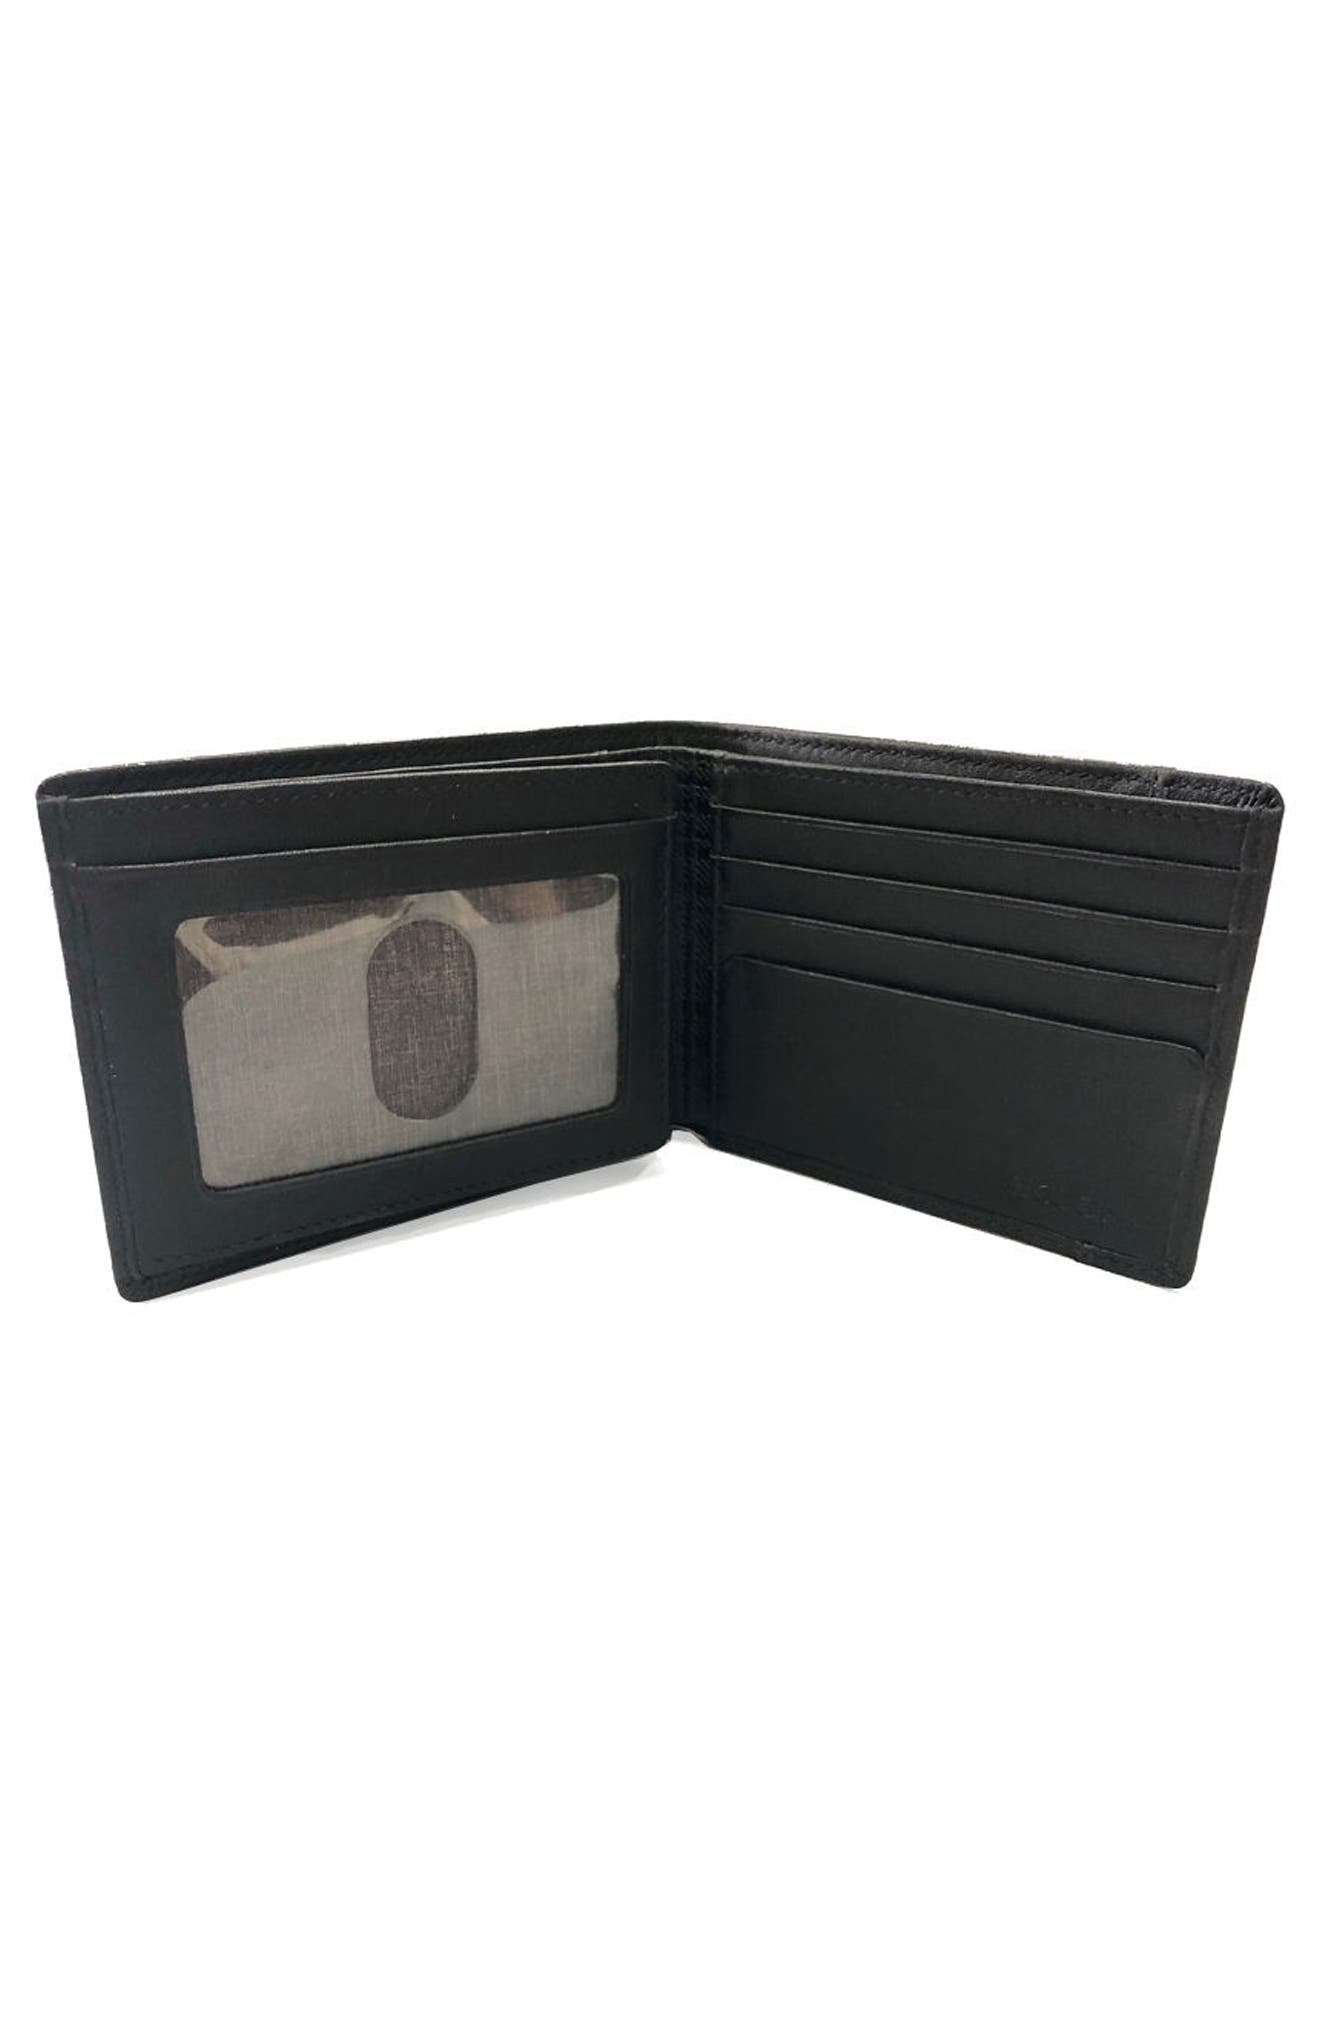 Grant Leather Wallet,                             Alternate thumbnail 2, color,                             001